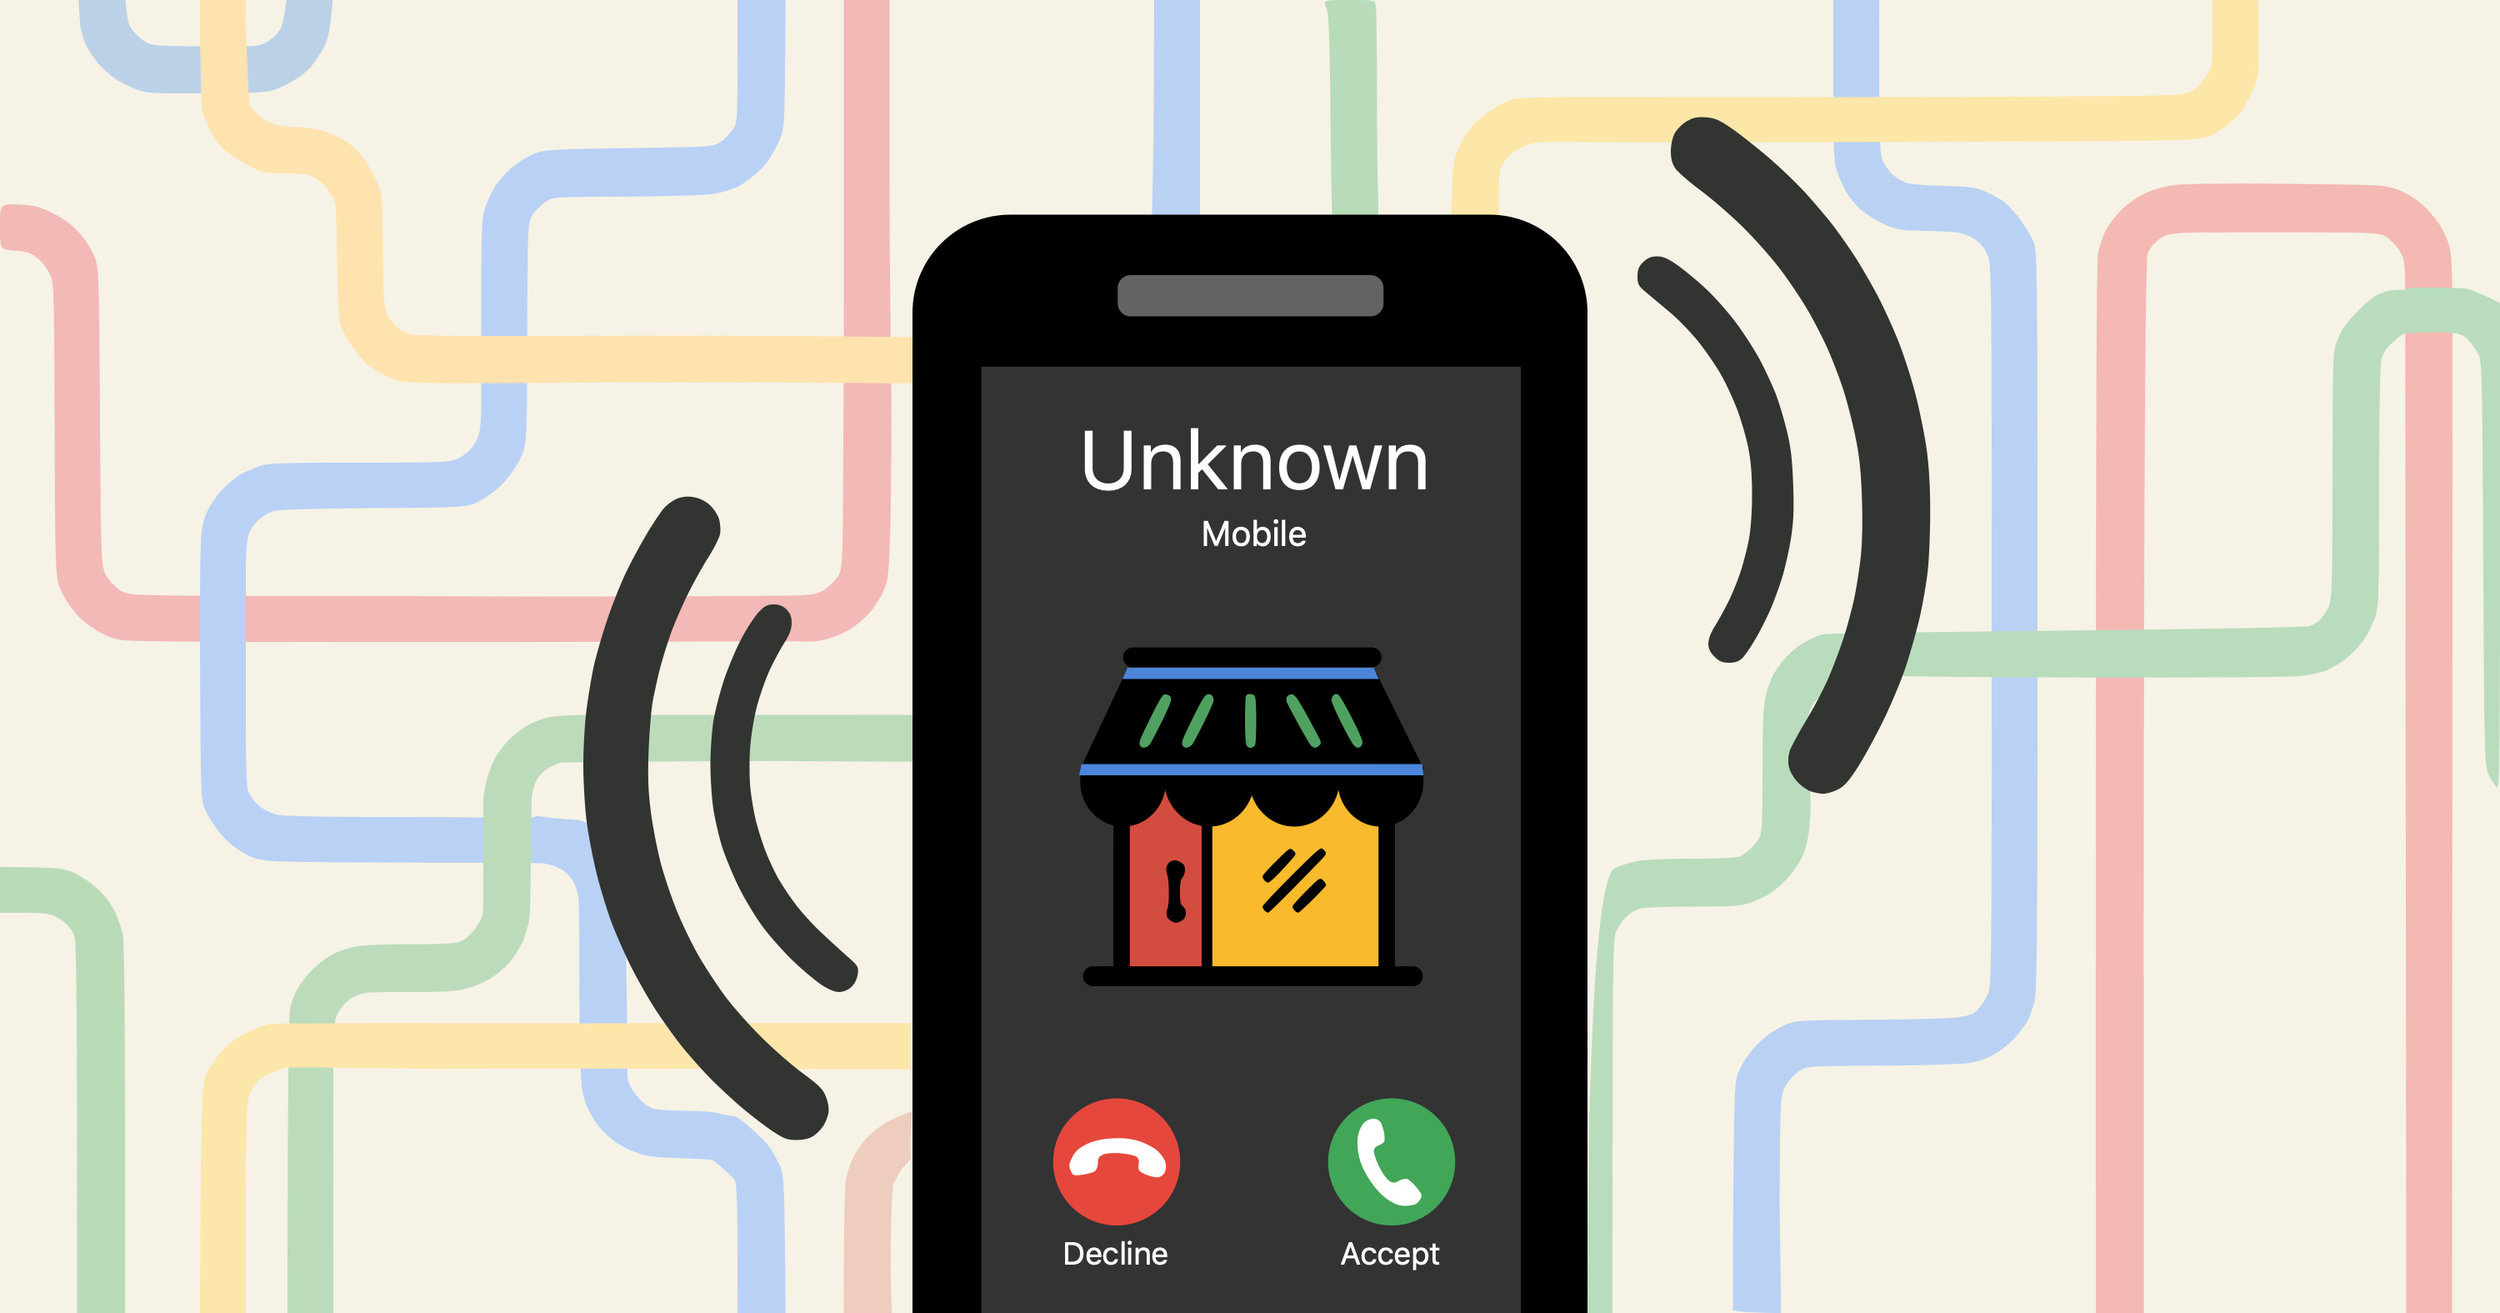 Recognizing and Avoiding Phone Scams - We may have entered the digital age, but the telephone remains scammers' weapon of choice. Once they get you on the line, phone scammers use false promises, aggressive sales pitches and phony threats to pry loose information they can use to steal your money or identity (or both).